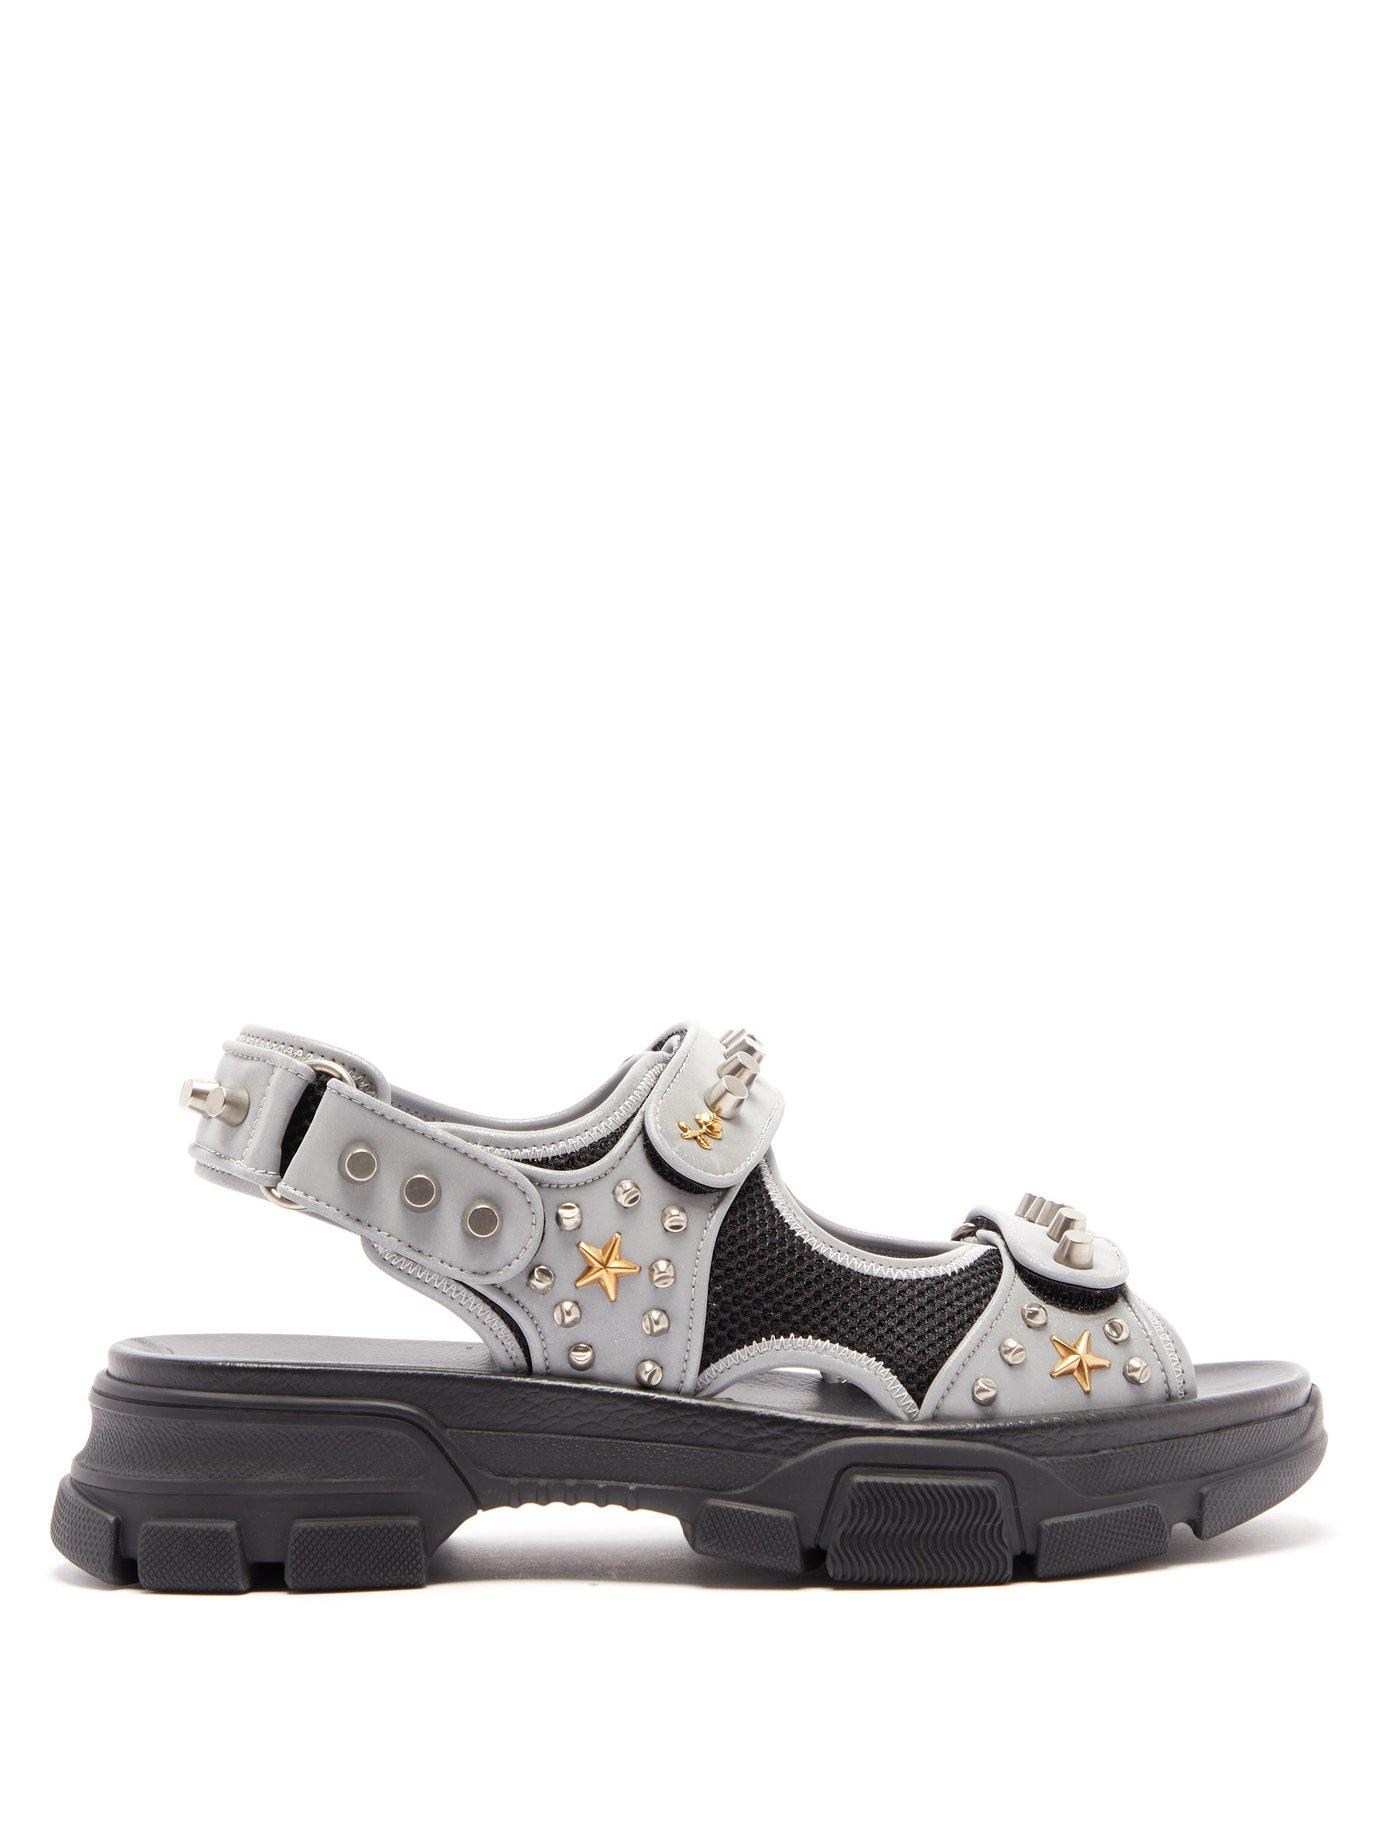 9a9cdd54d Lyst - Gucci Stud Embellished Leather Sandals in Gray for Men